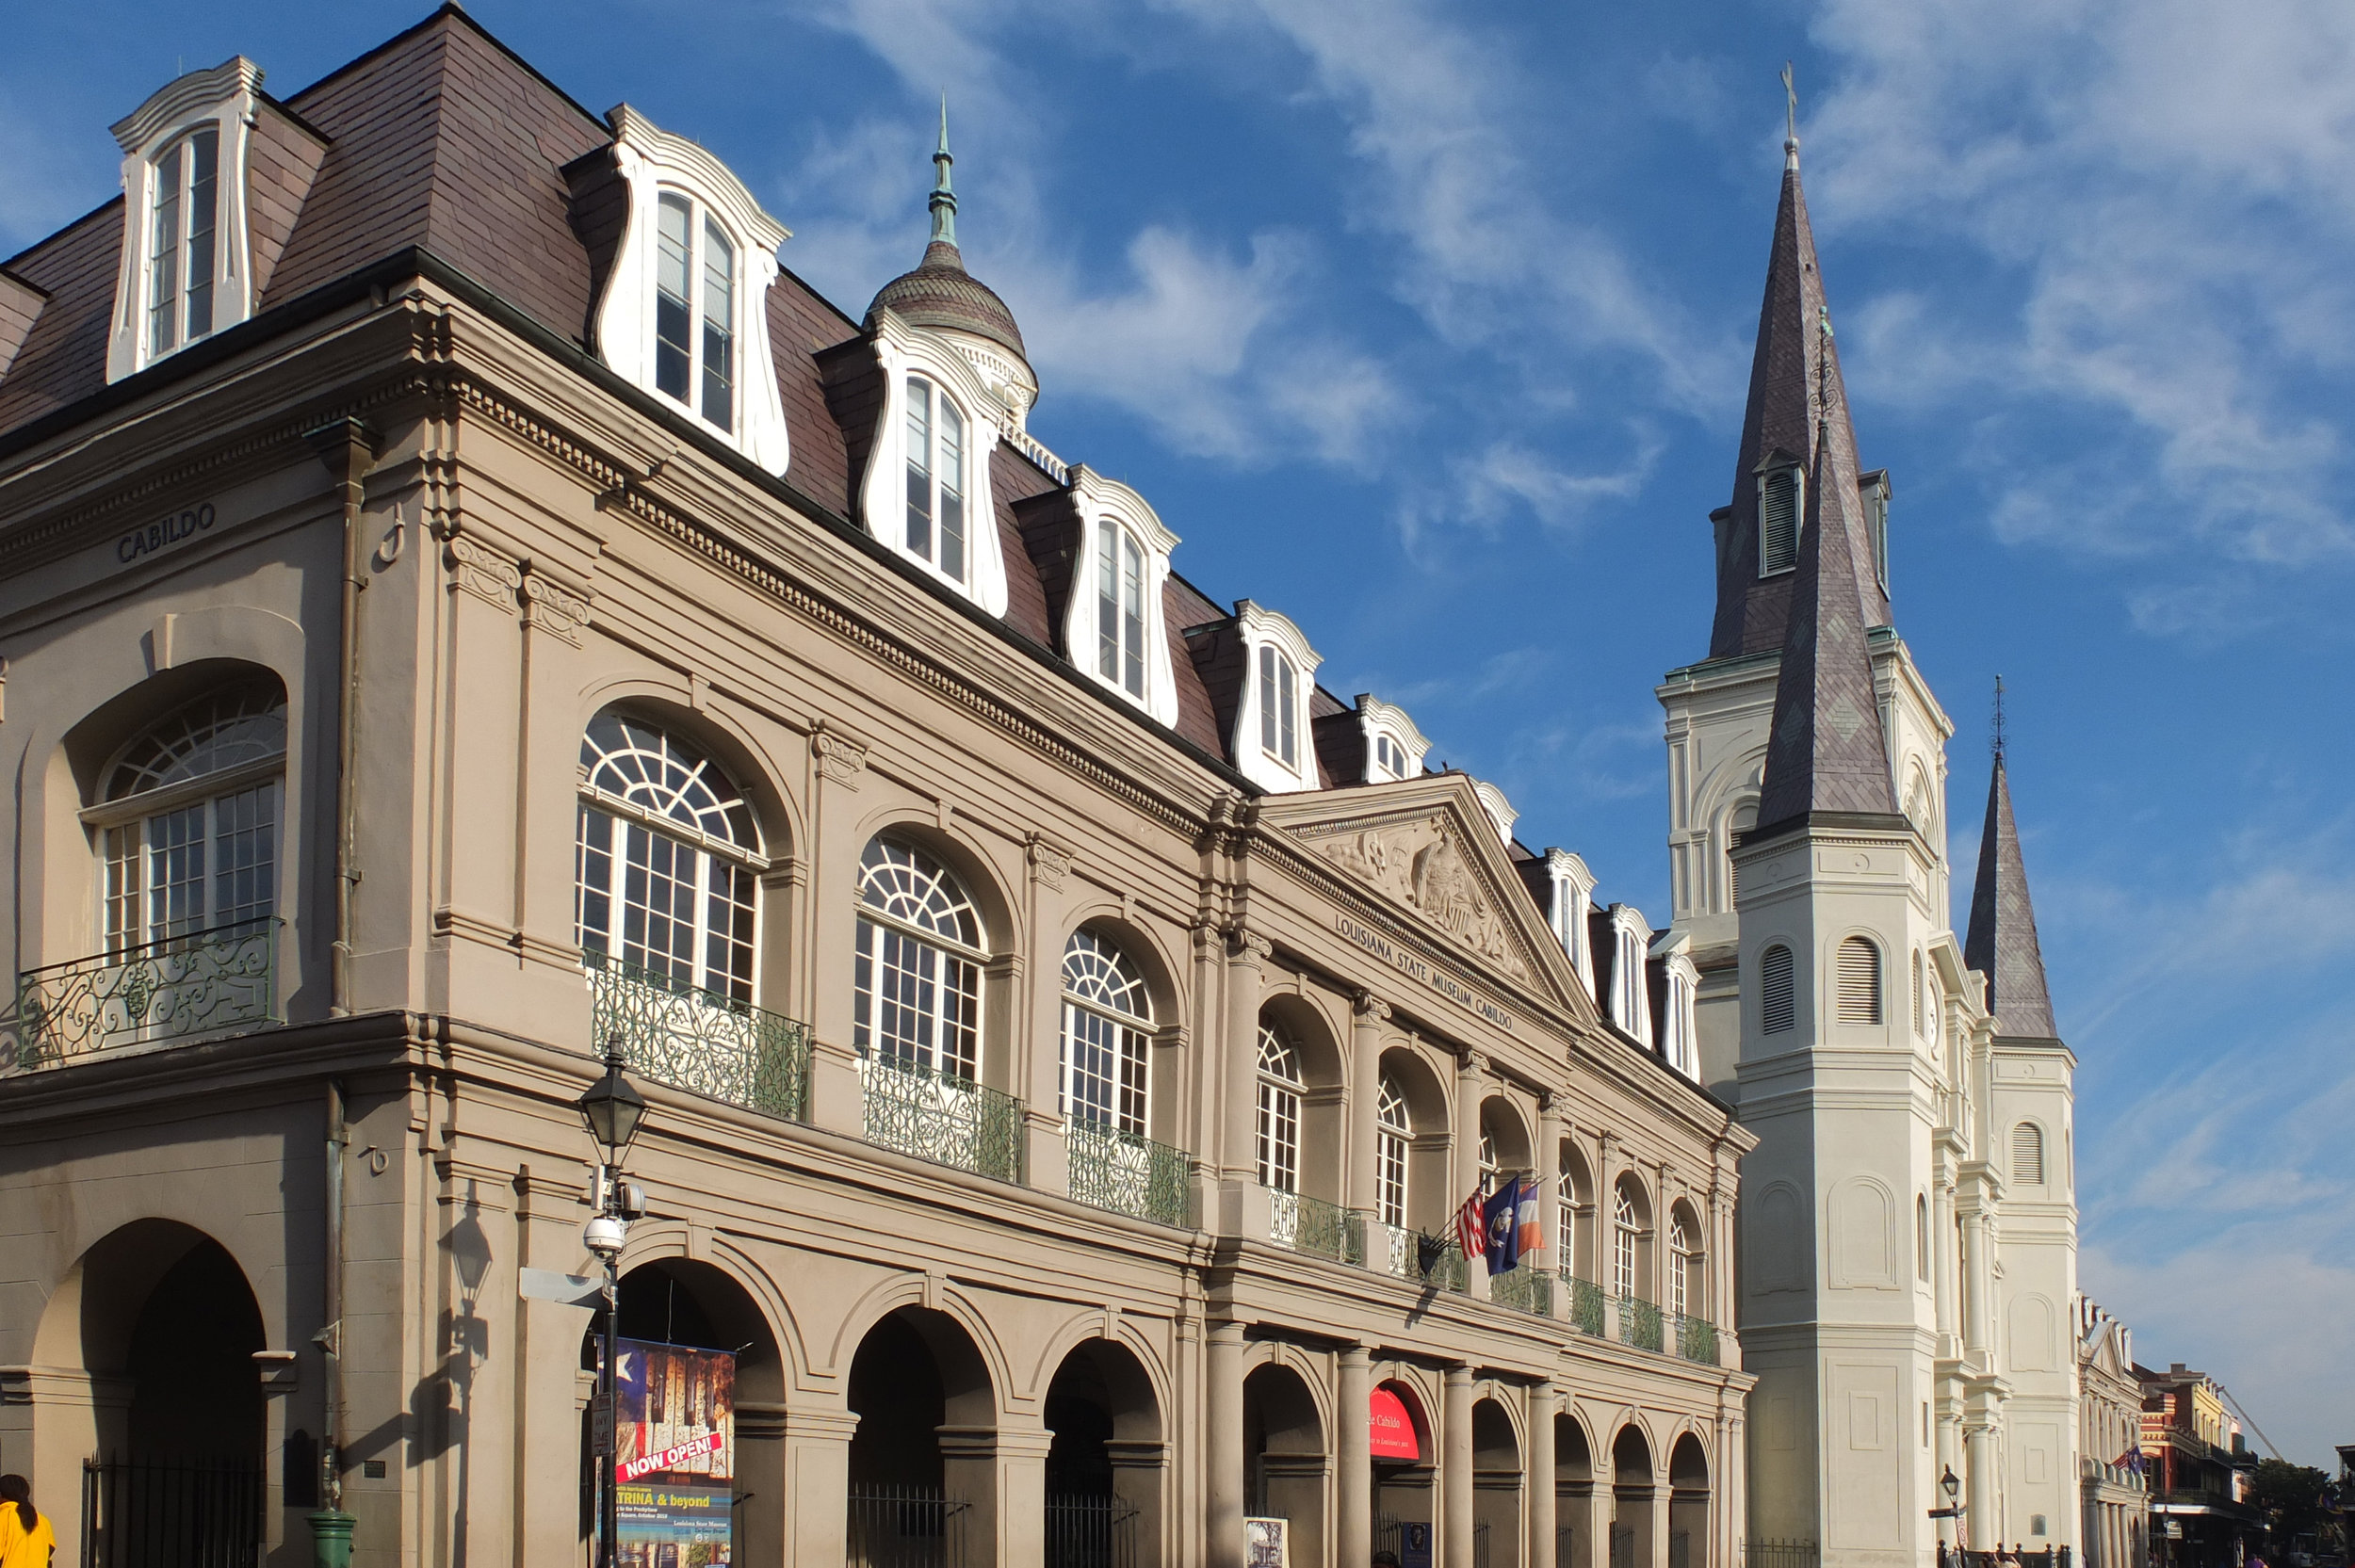 We Secure Museums - The Louisiana State Museum Cabildo chose Active Solutions to secure its New Orleans Tricentenniel exhibition.